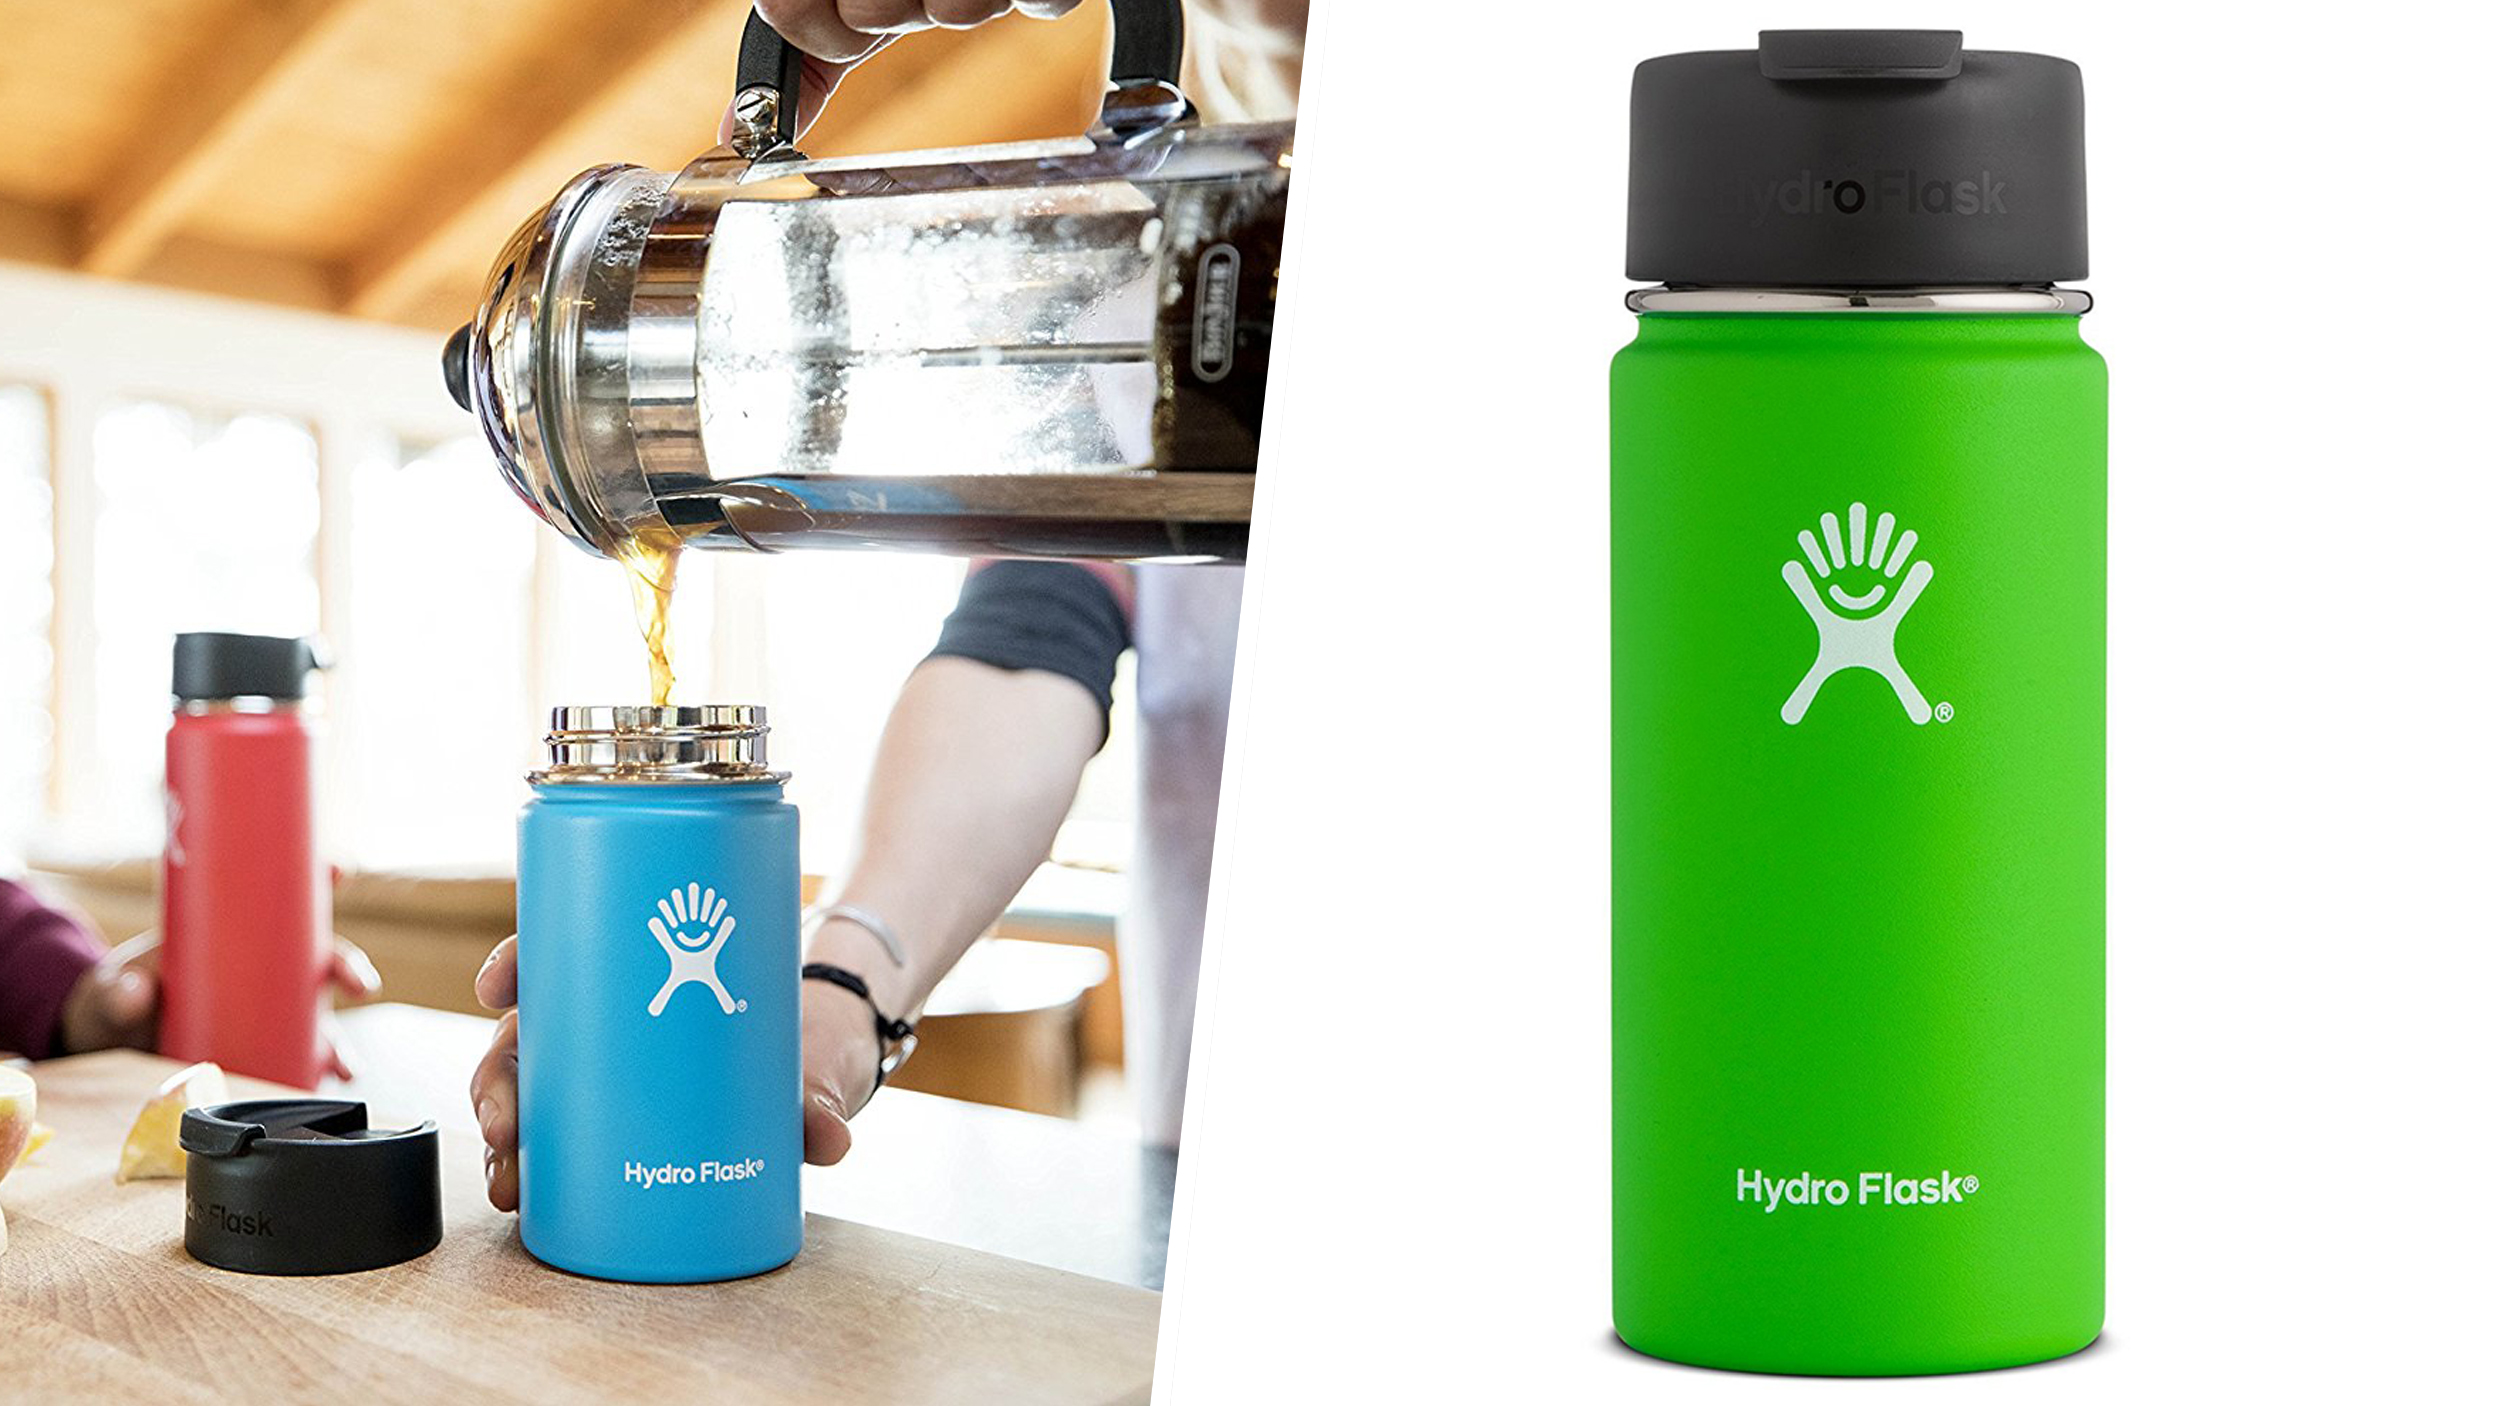 Hydroflask insulated thermos travel mug review